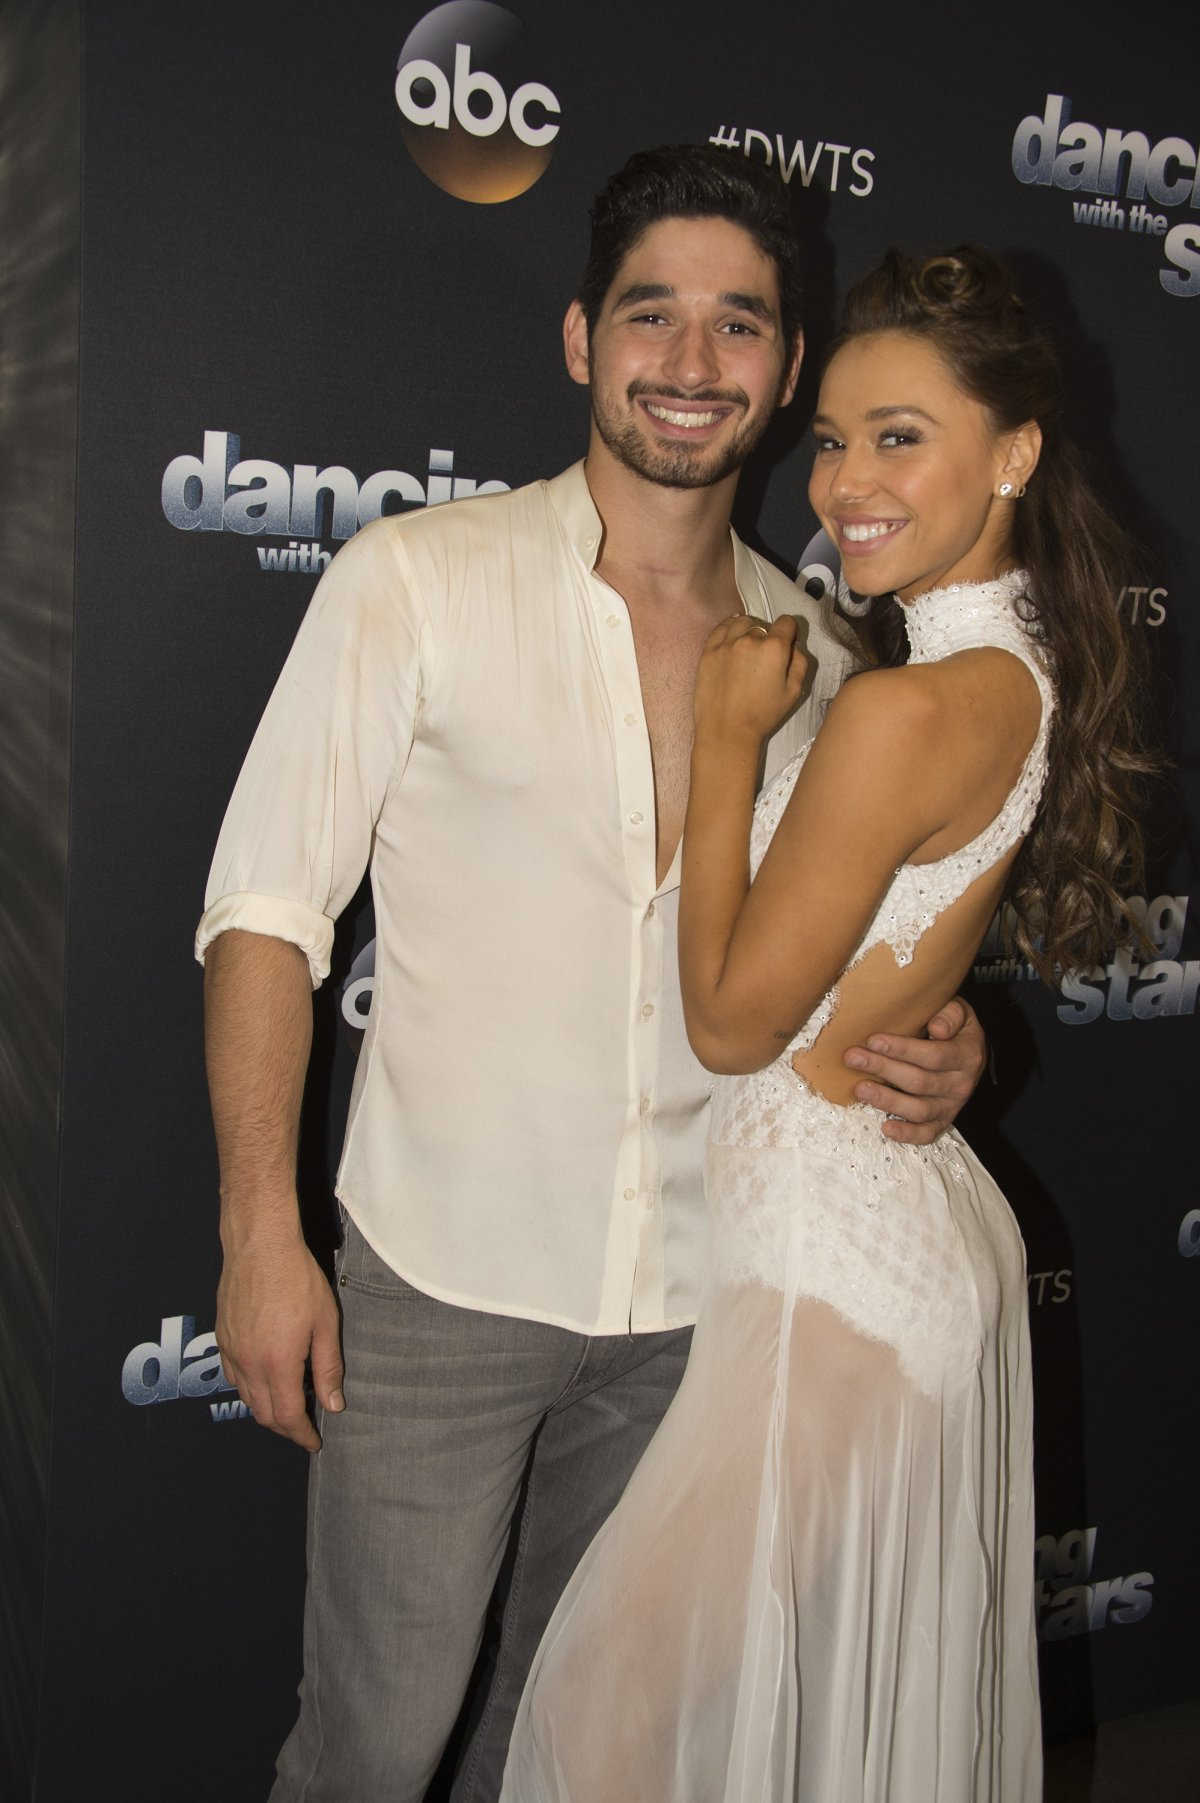 Alexis Ren and Alan Bersten